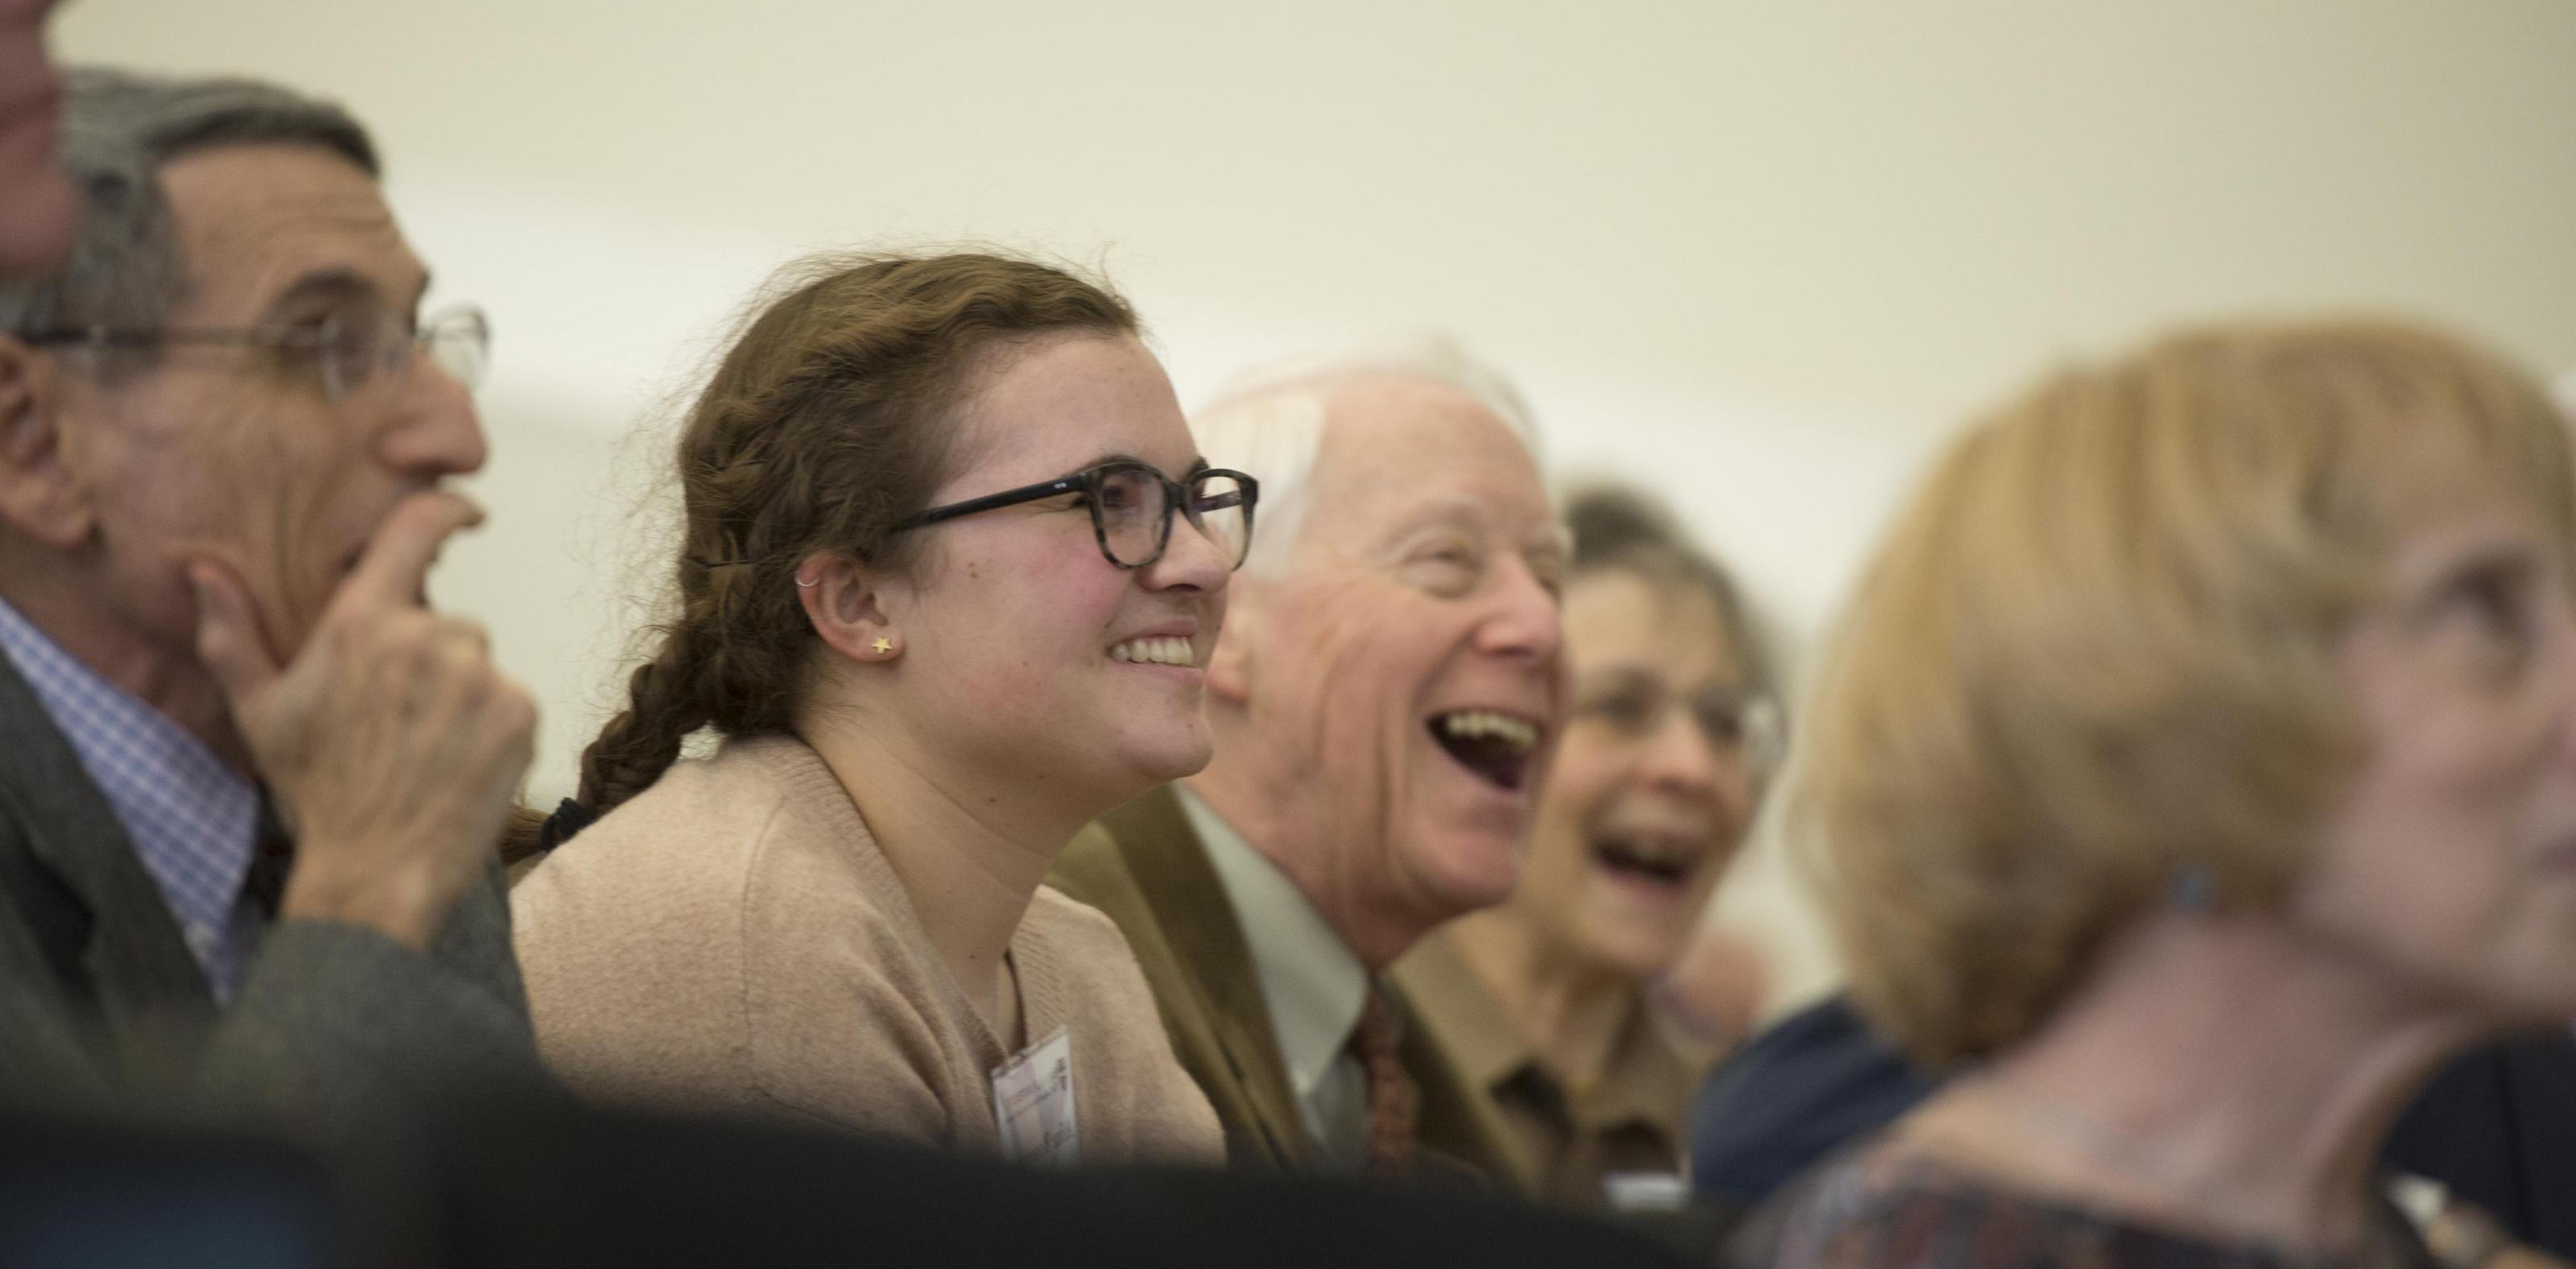 A group of people of various ages laughing